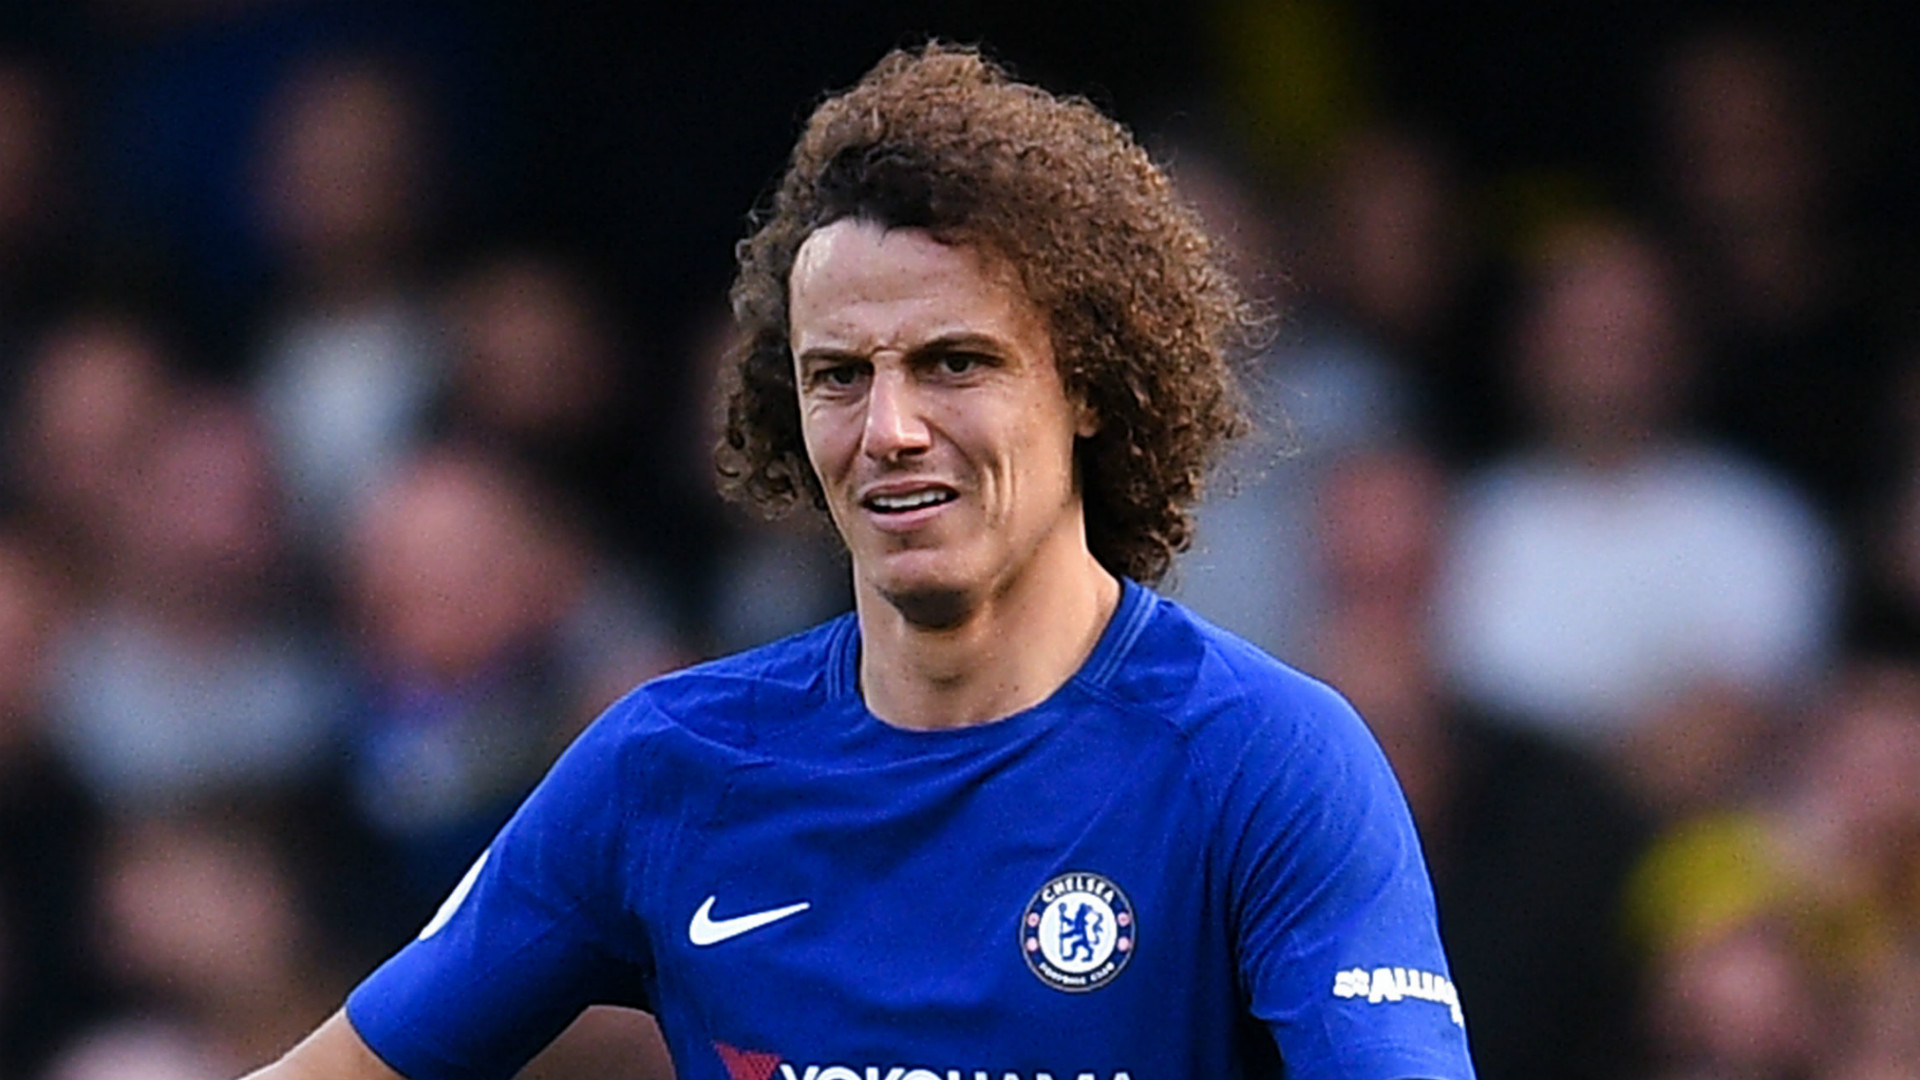 david luiz chelsea 1vxu23zs97amp18n9yb3scnt91 - ROUND-UP of 30/1/2018 TRANSFER NEWS, DONE DEALS AND RUMOURS